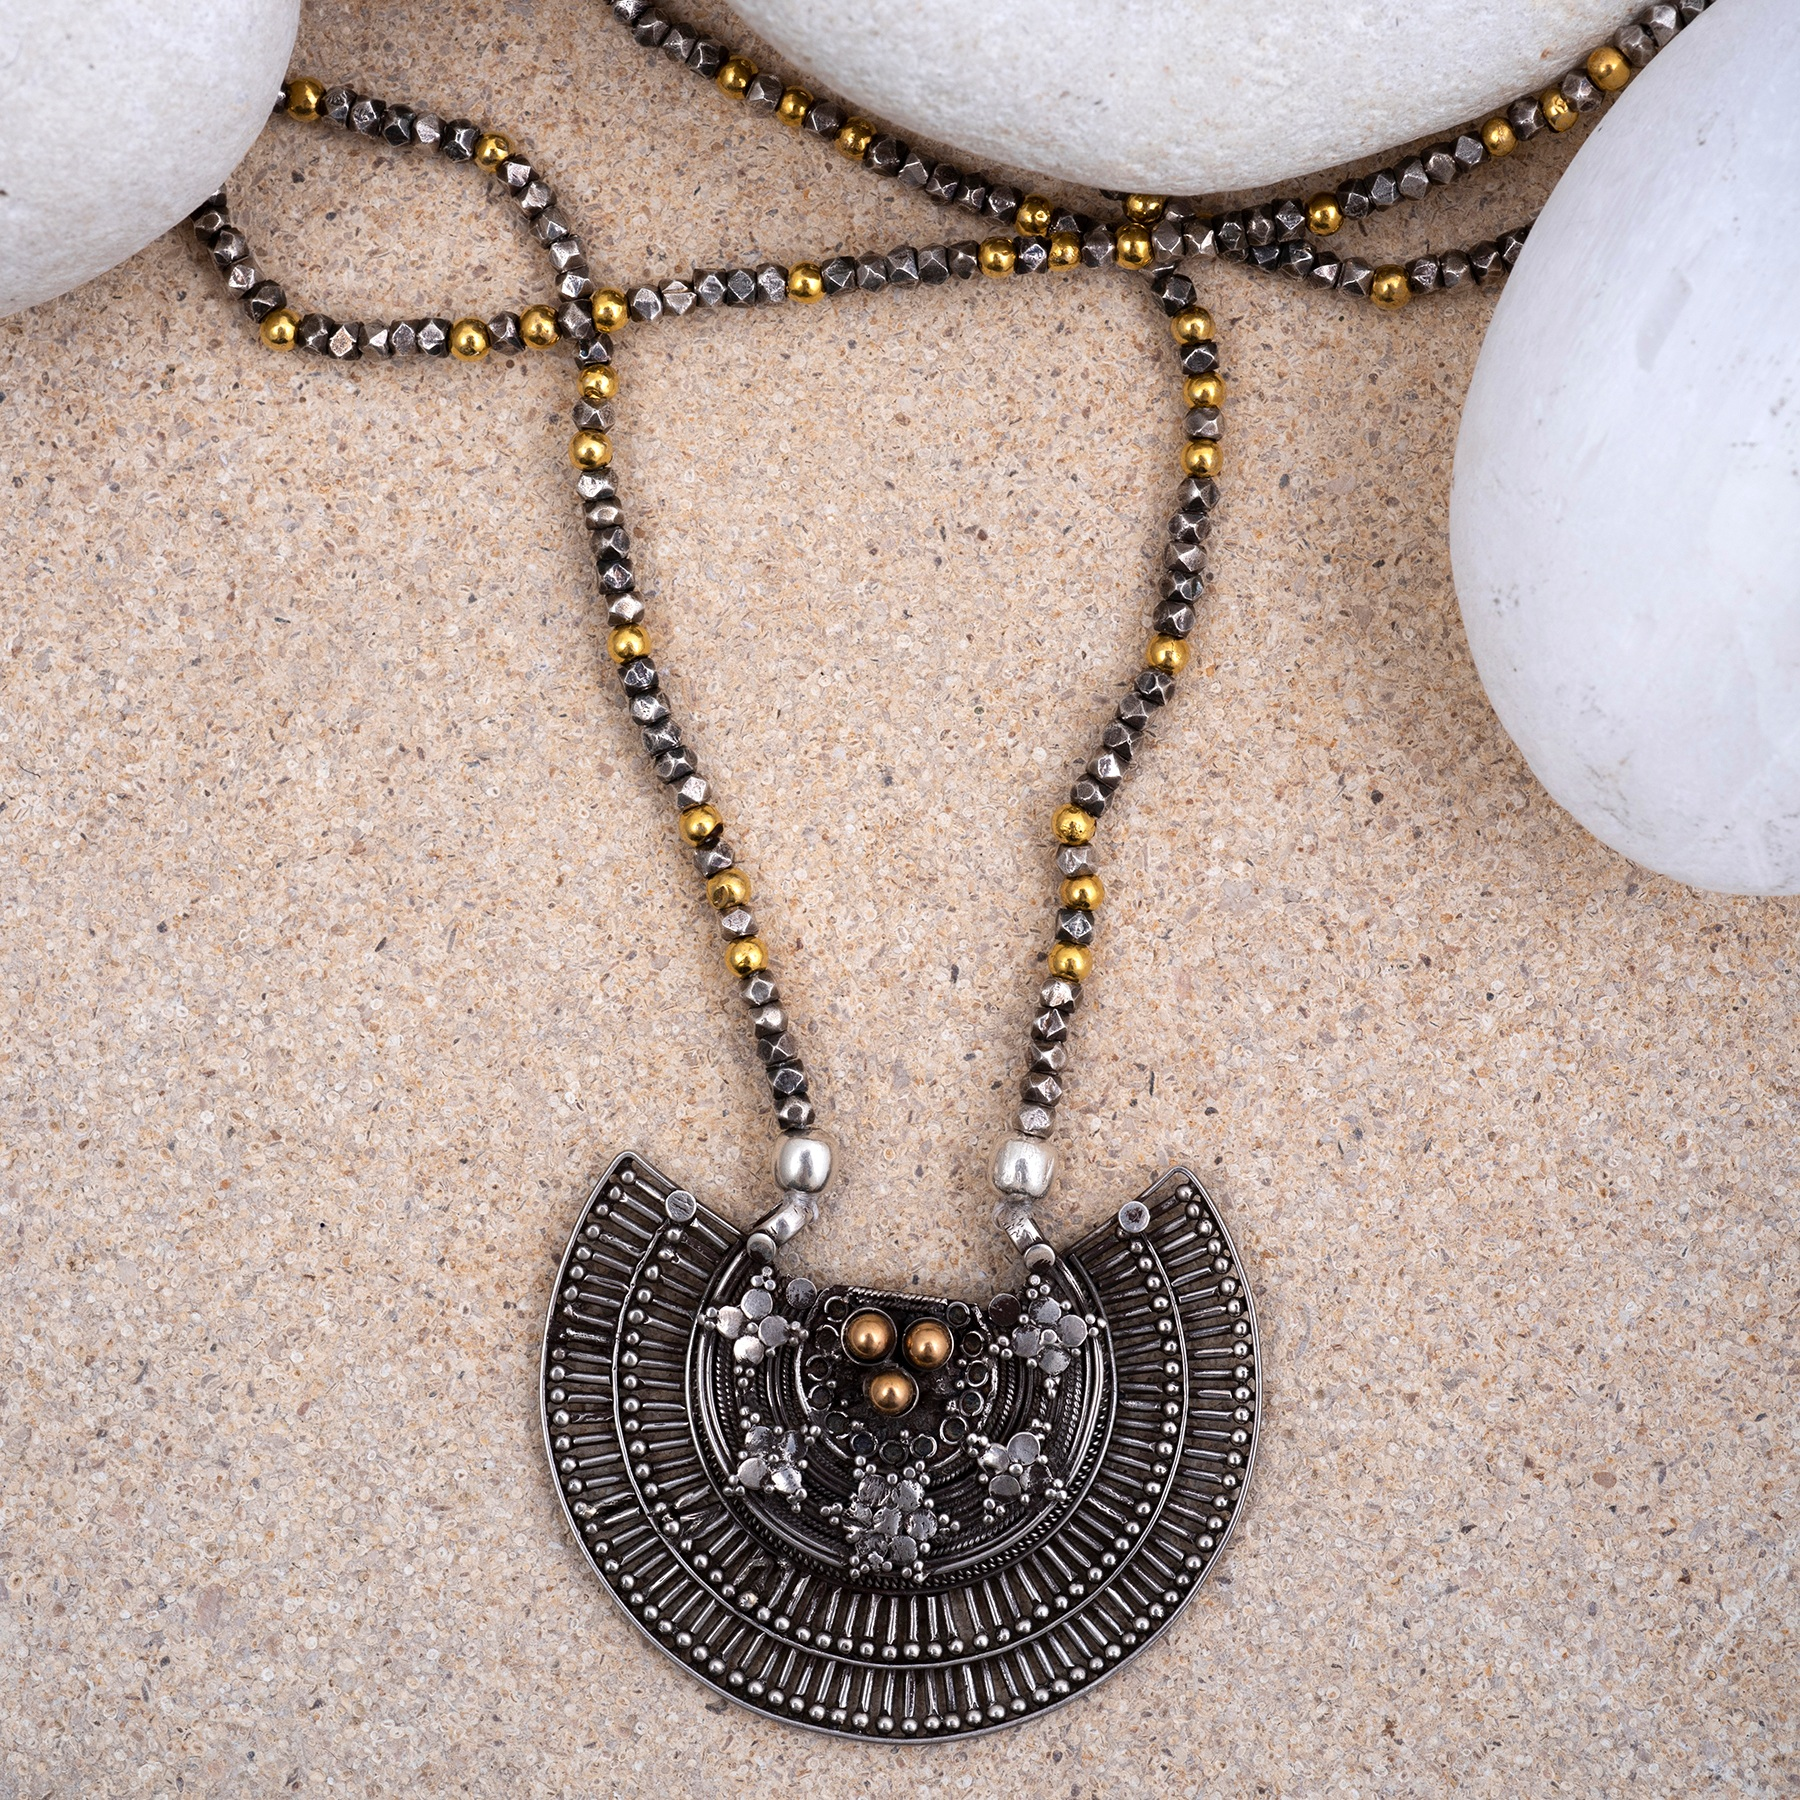 Silver and Gold Gujarati Necklace. Inspired by the wonderful shape of an ancient Gujarati nose ring.This is silver embellished with little gold balls.